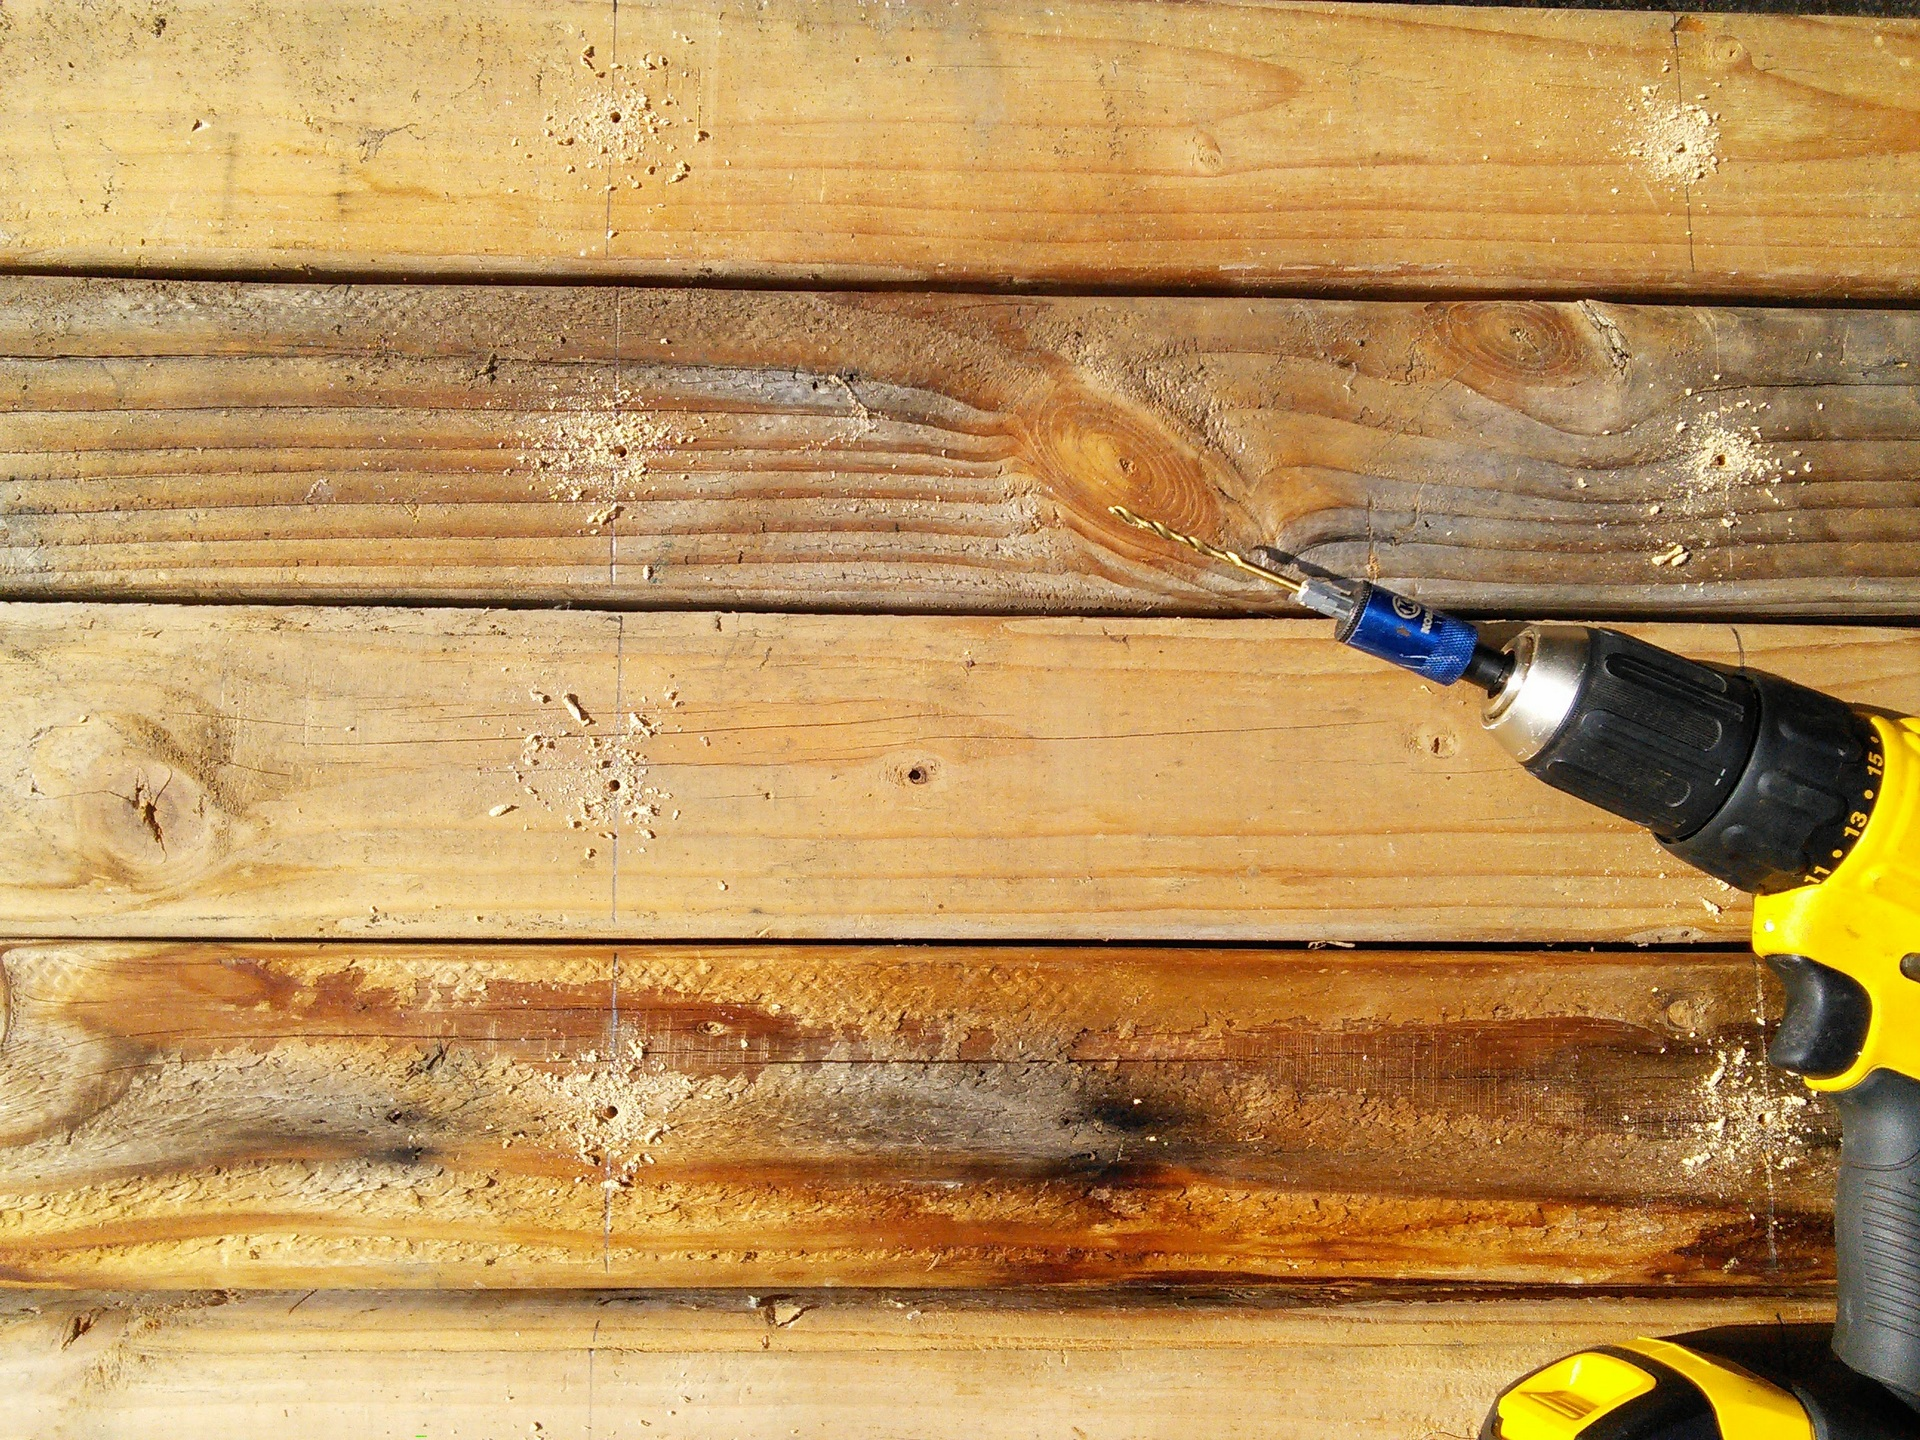 Drilling pilot holes for the screws